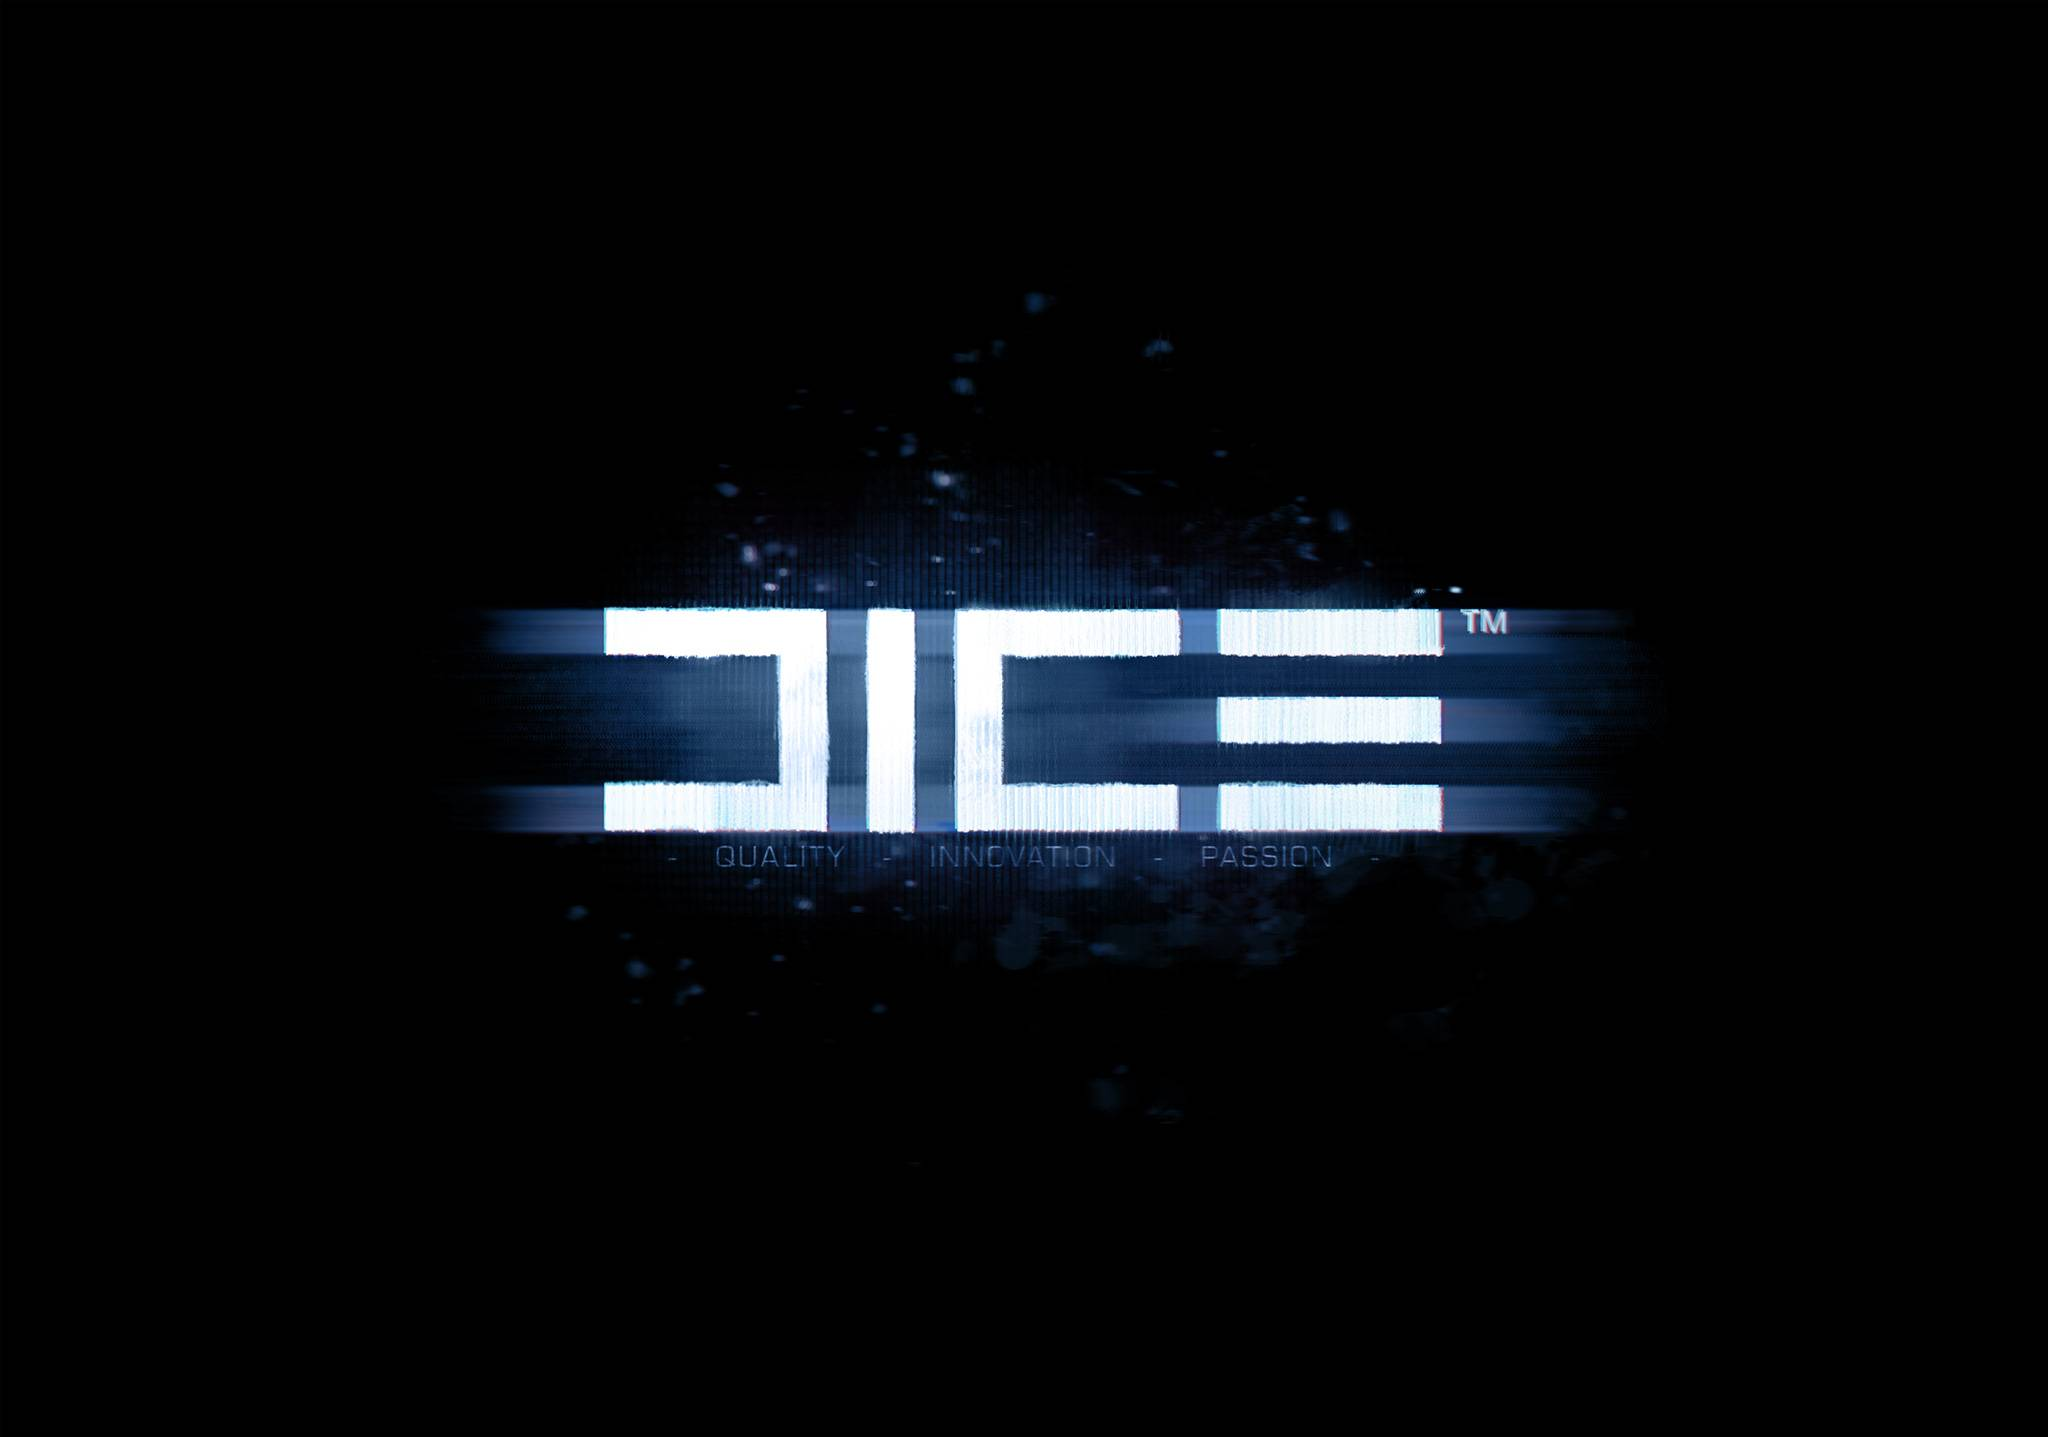 dice-logotype-wallpaper